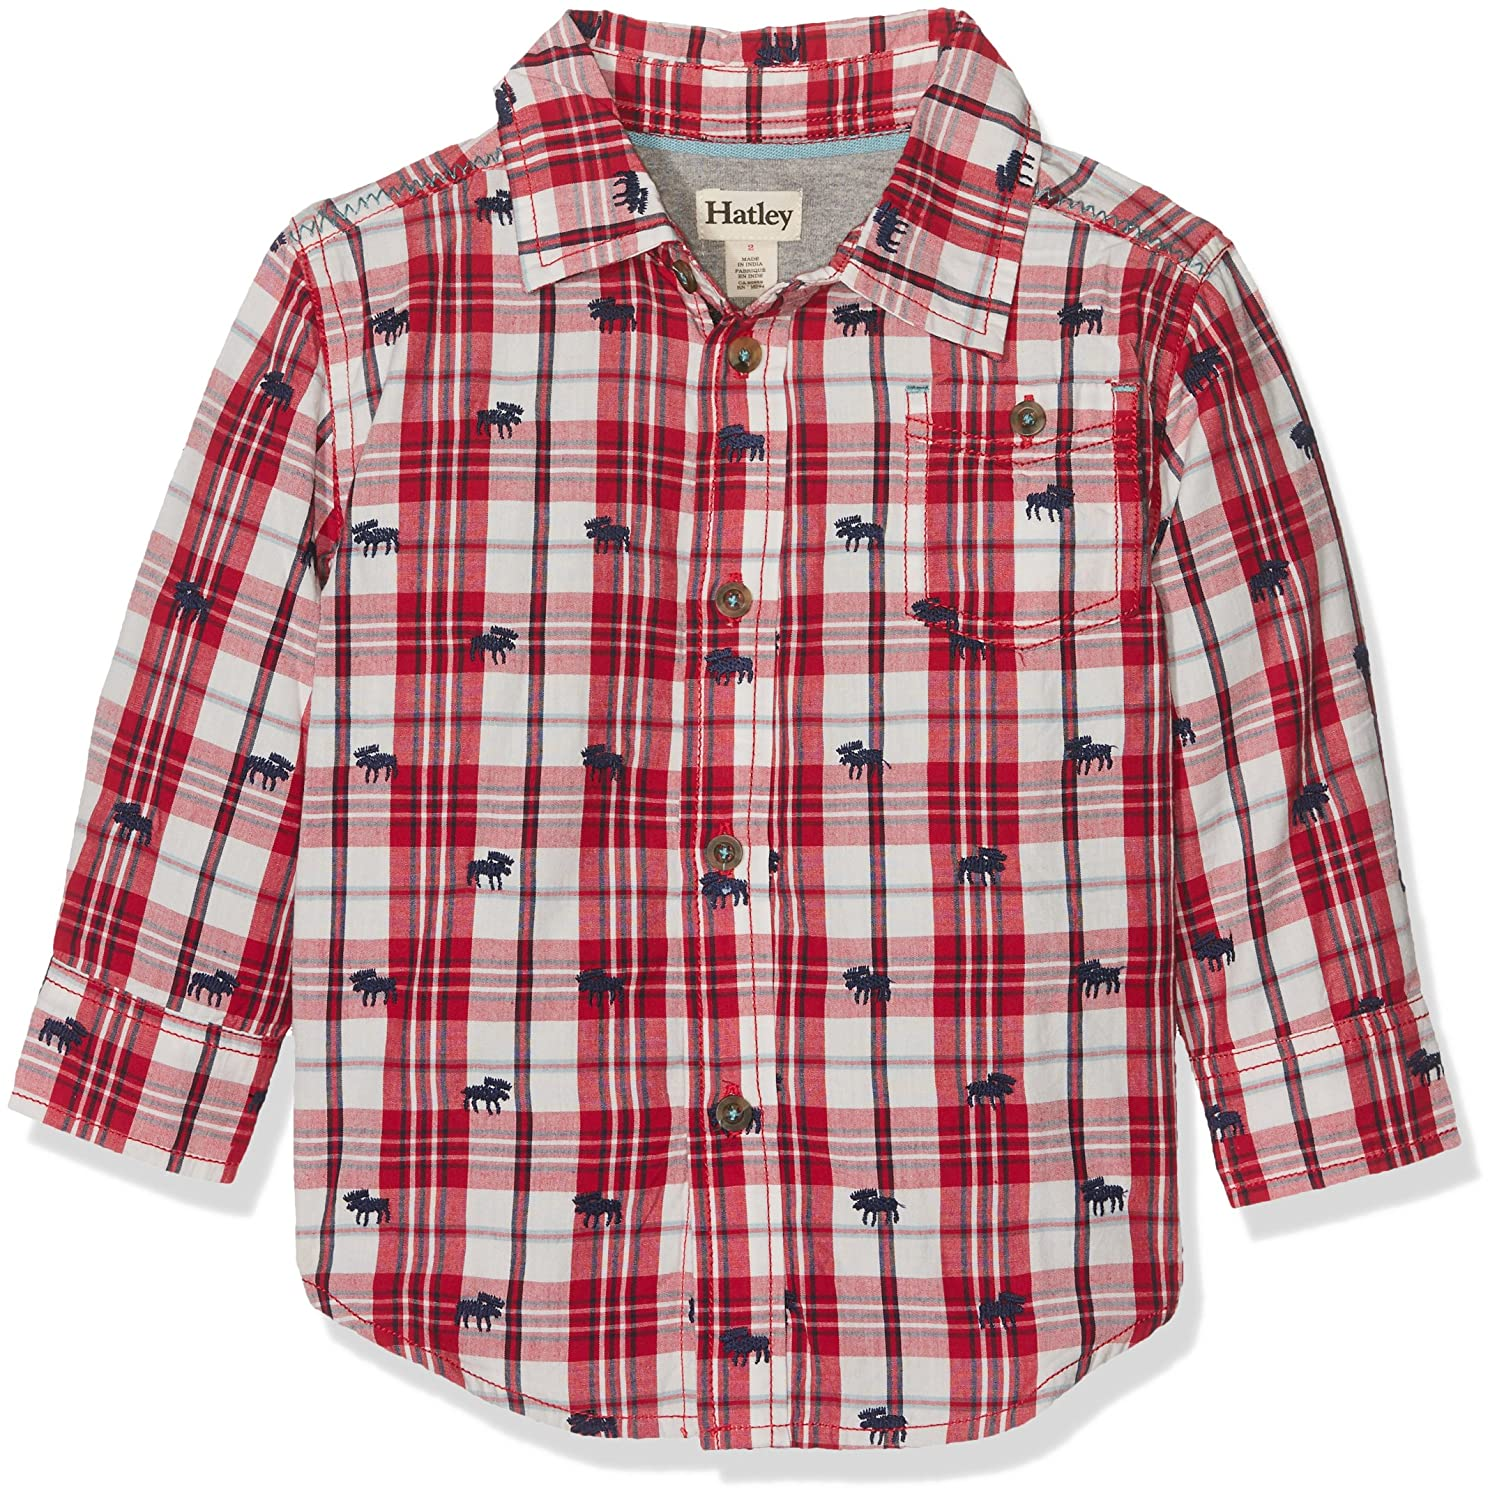 Hatley Boy's Plaid Button Down Shirt, Red (Moose Herd), 6 Years TS2WIMO135